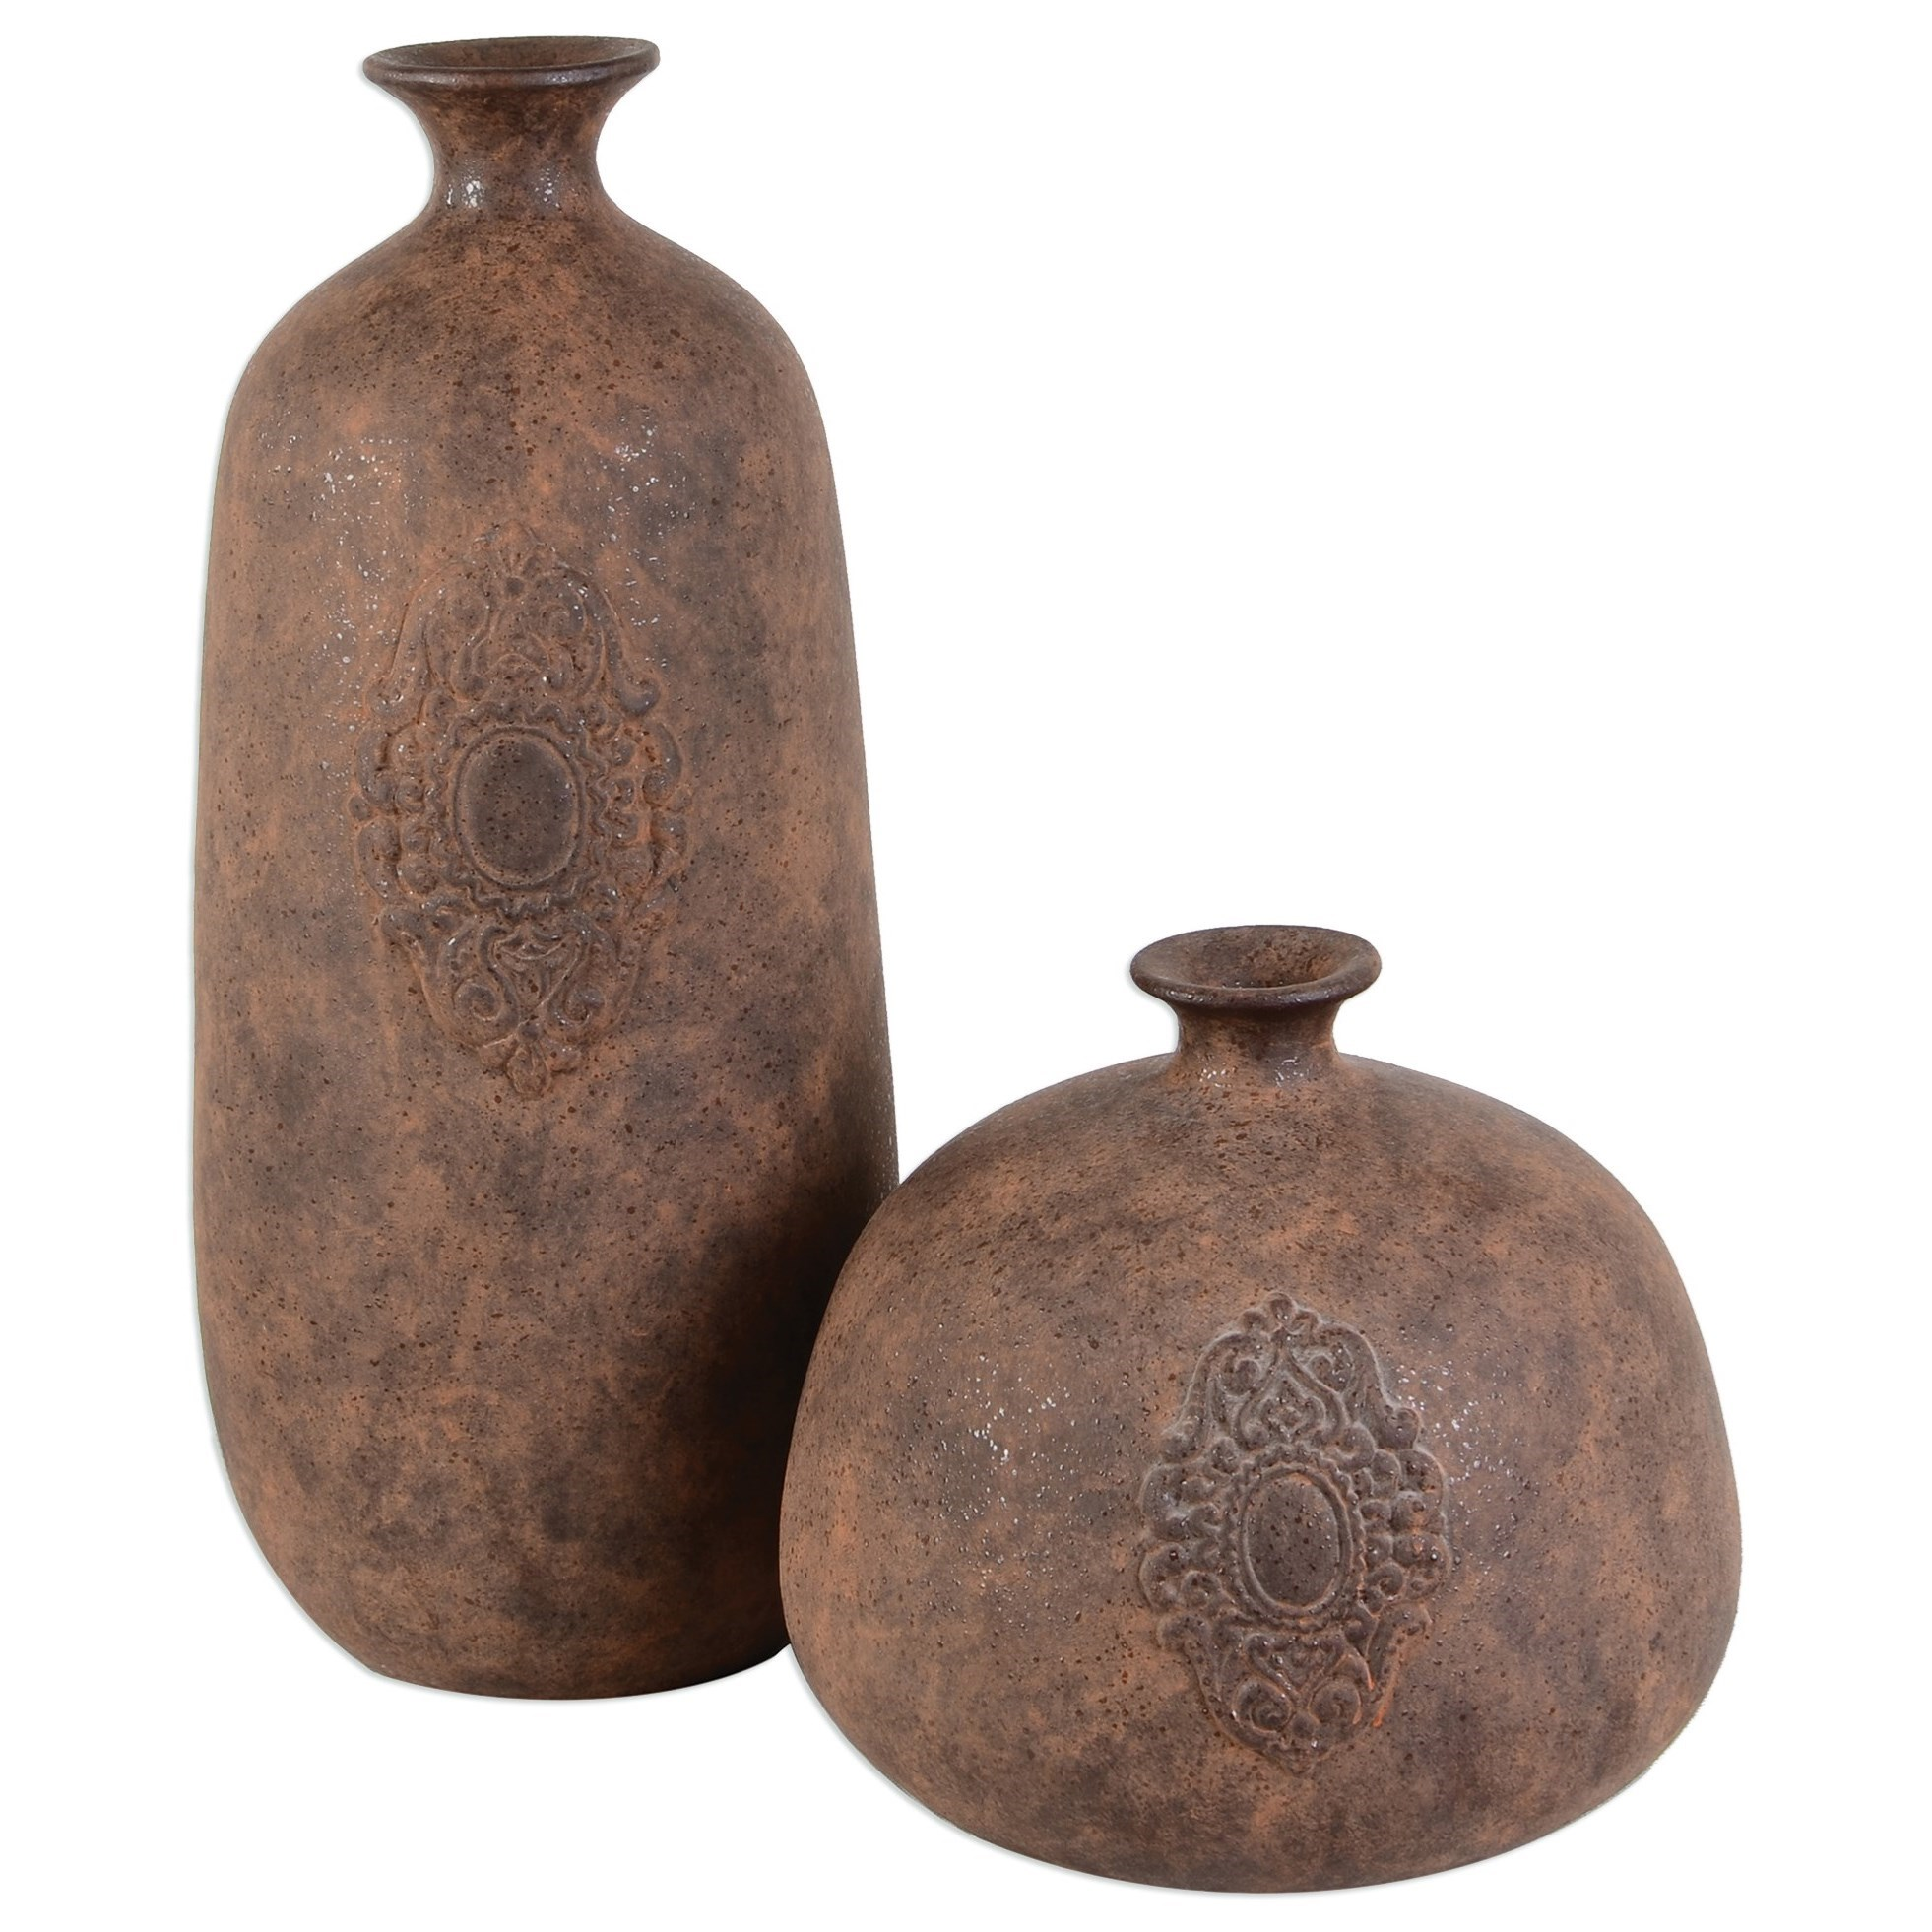 Uttermost Accessories  Frederico Rustic Vases (Set of 2) - Item Number: 20105